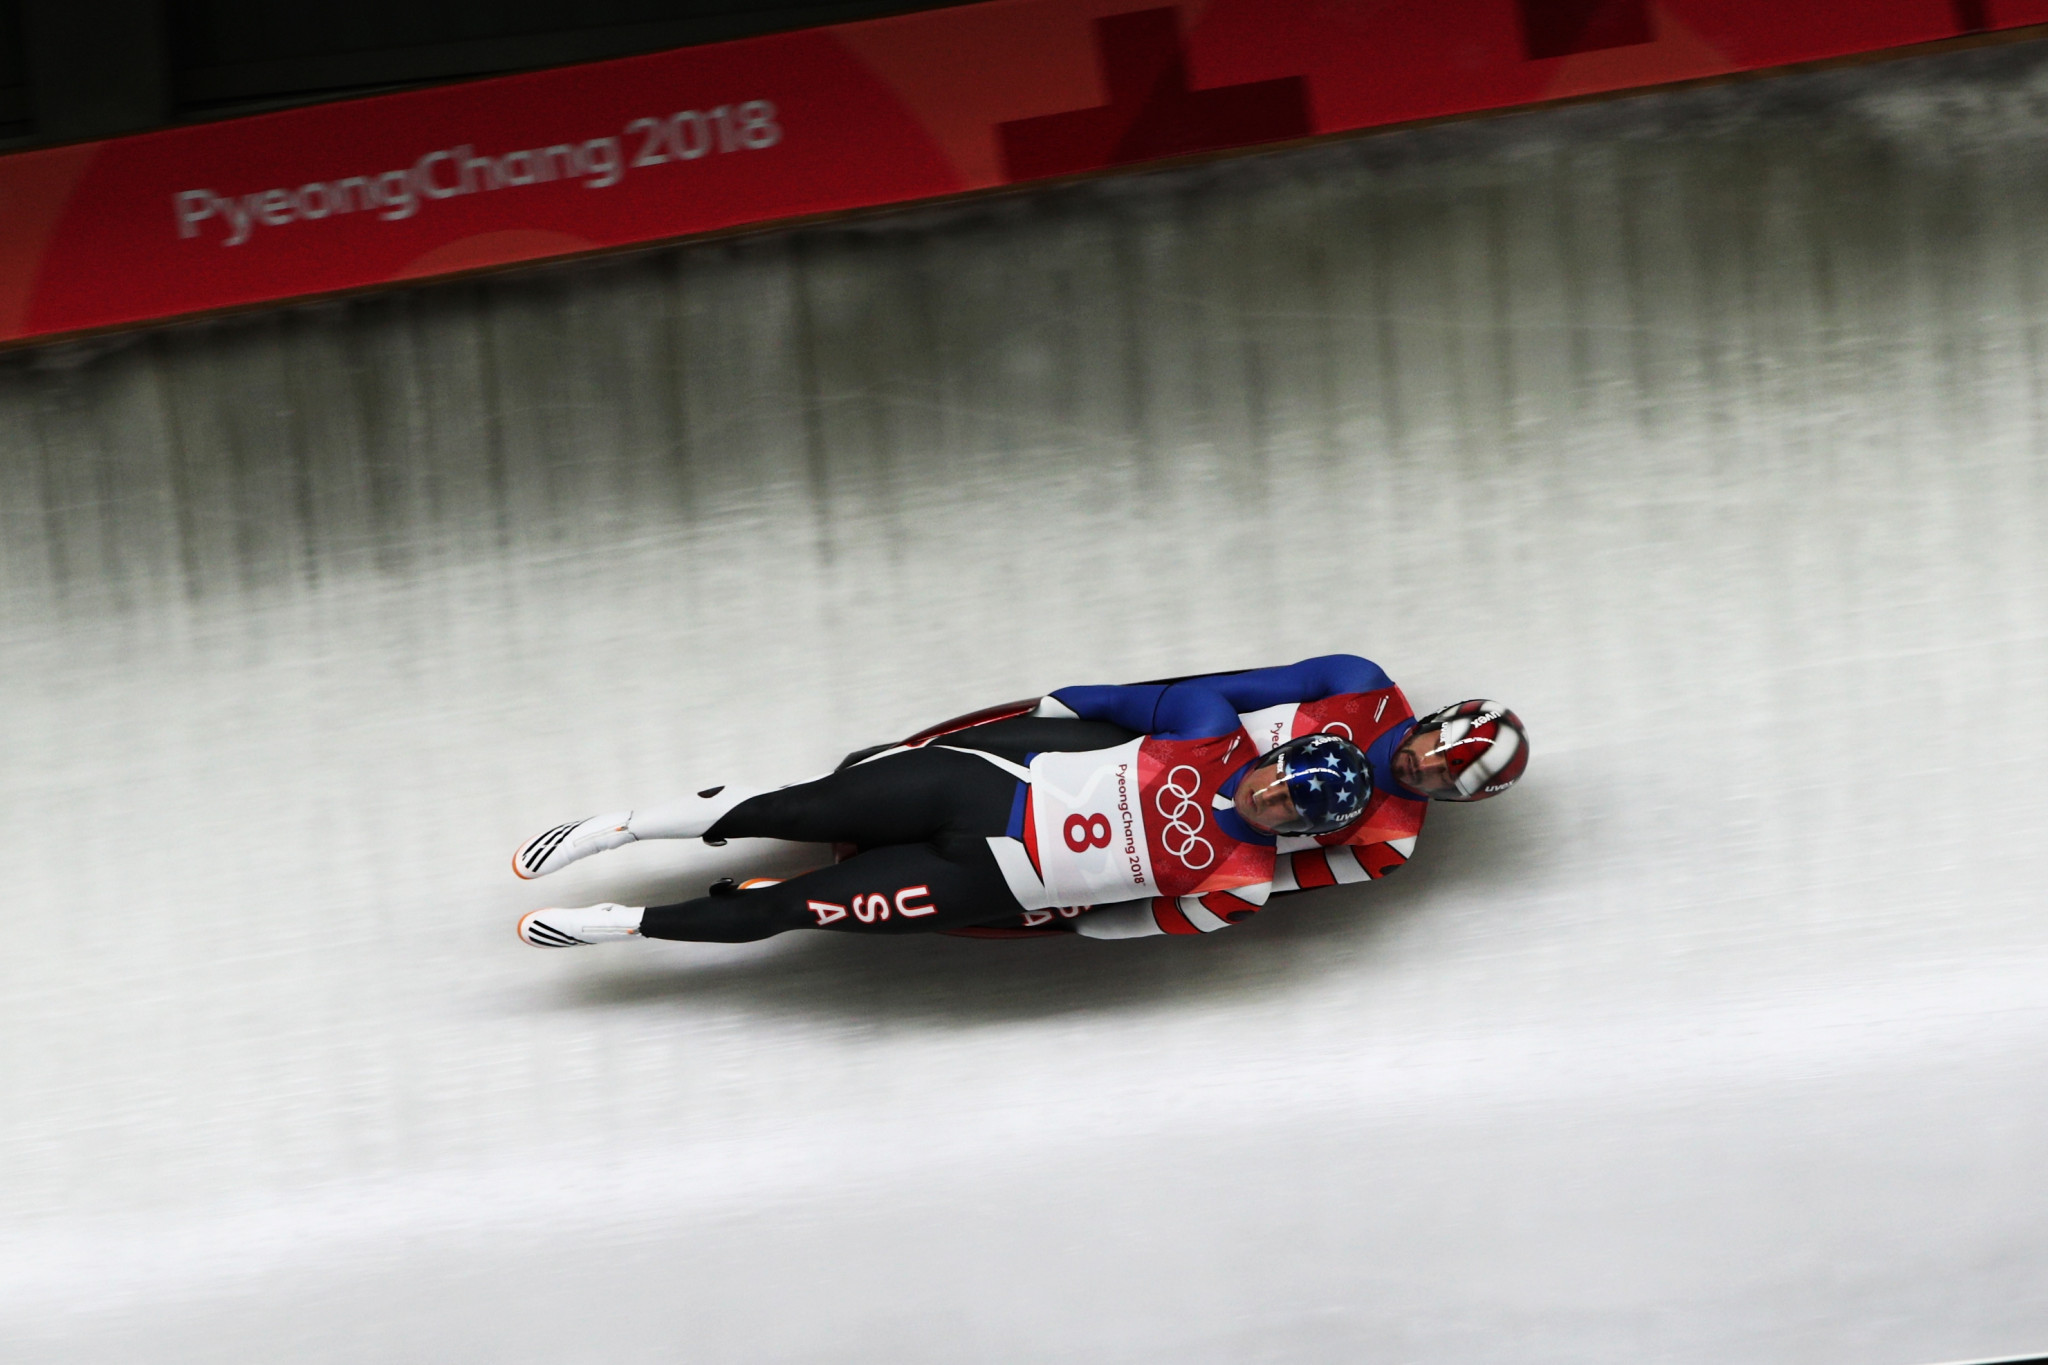 USA Luge is aiming to improve performances ahead of Beijing 2022 ©Getty Images